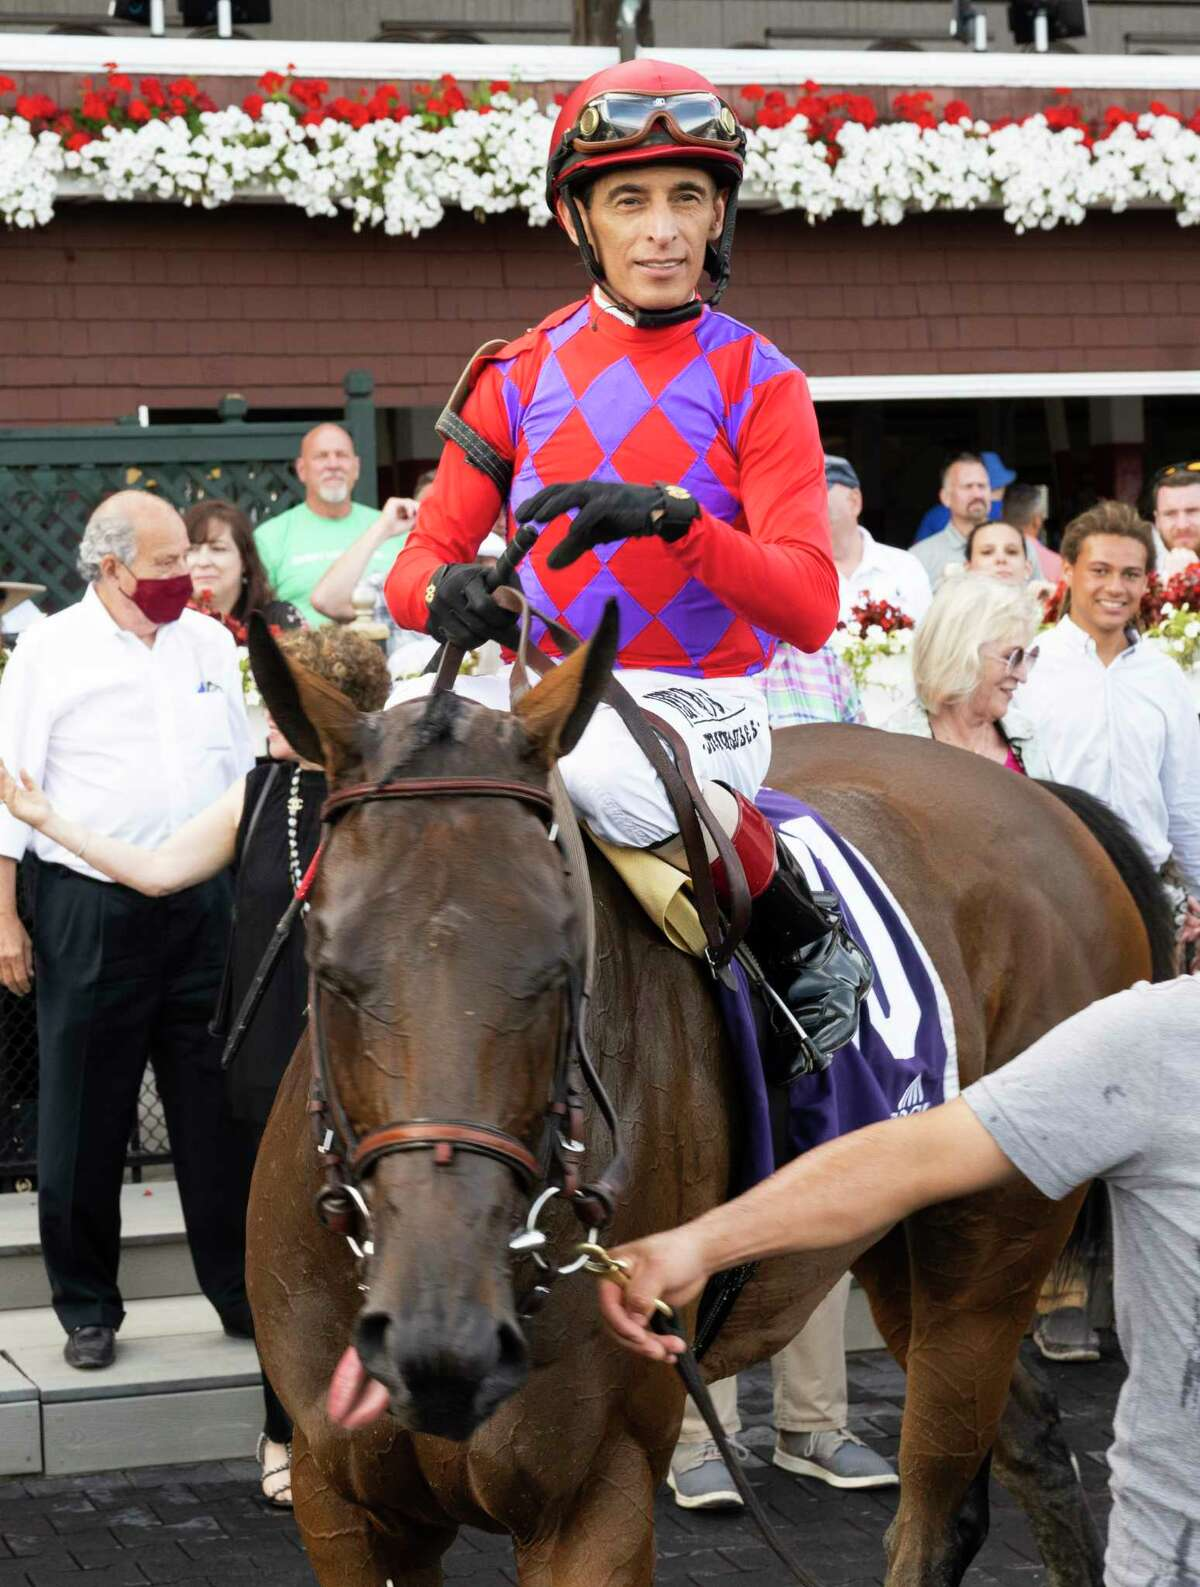 Jockey John Velazquez takes a turn in the winner?•s circle on Star Devine after winning the 2nd running of The Galway at the Saratoga Race Course Sunday Aug 15, 2021 in Saratoga Springs, N.Y. Photo Special to the Times Union by Skip Dickstein